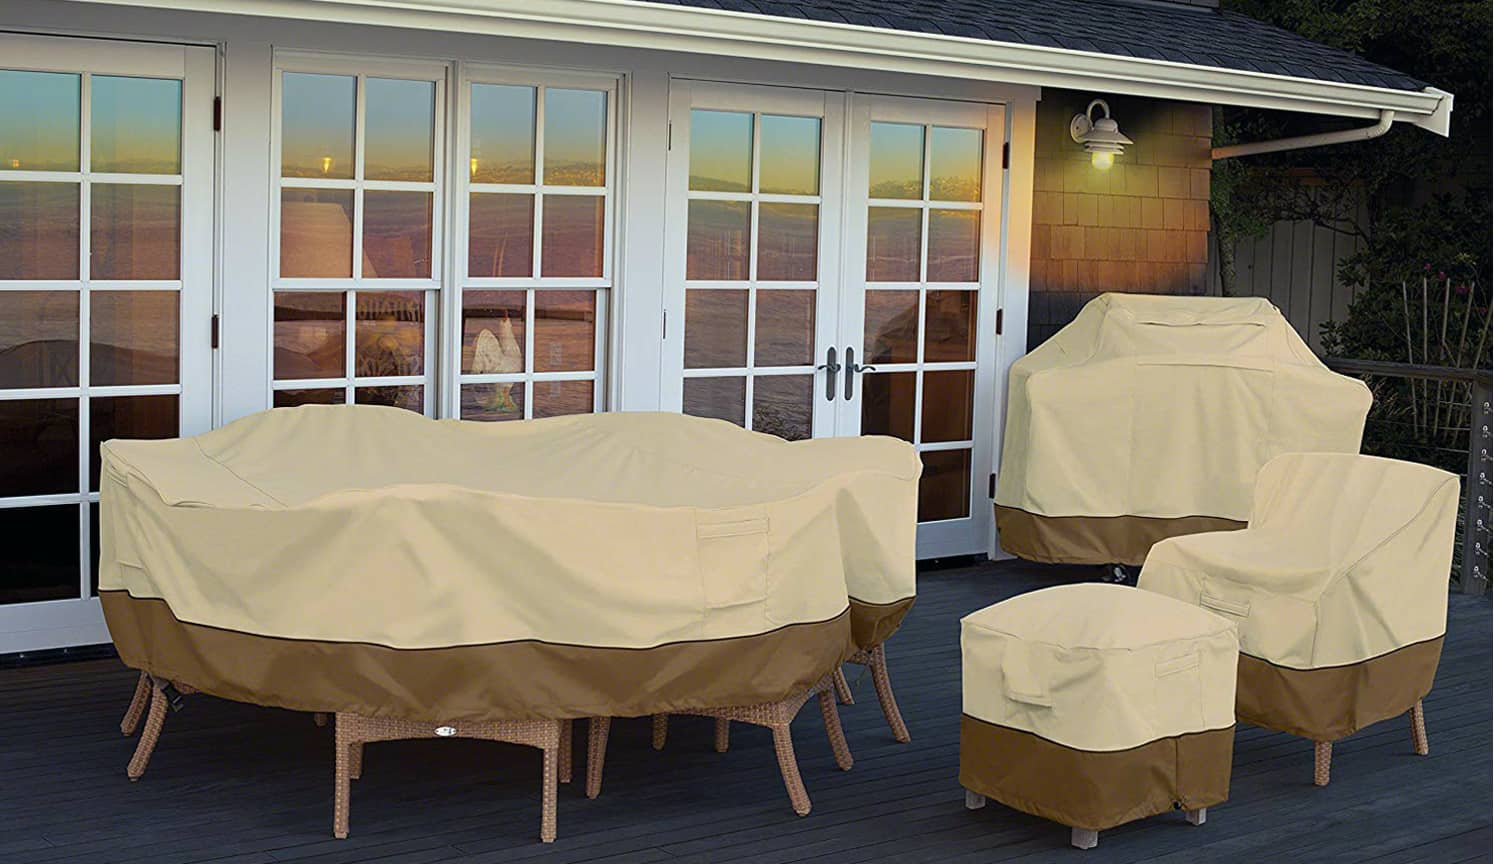 Patio Table And Chairs Cover as the third related product of Patio Furniture Covers